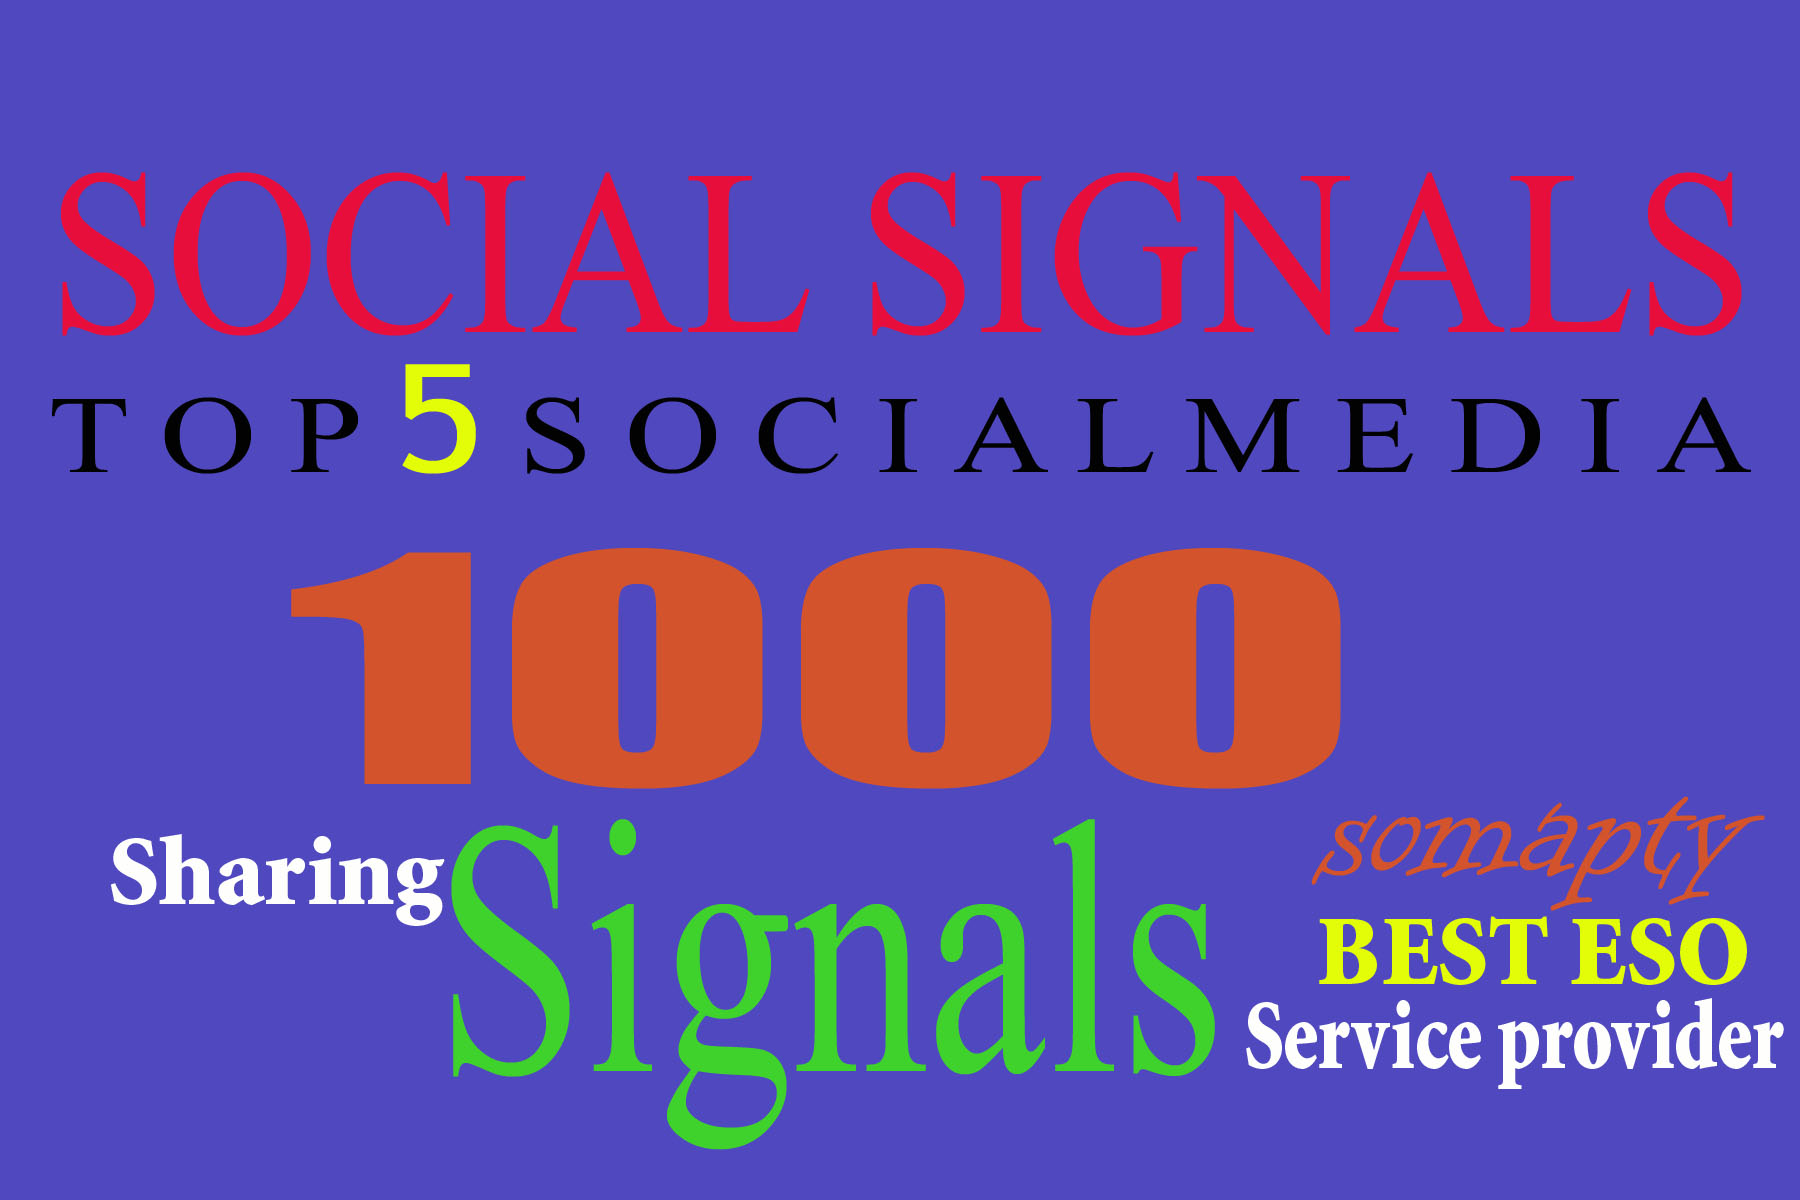 PRovide PR9-PR10 Social Media Share Signals